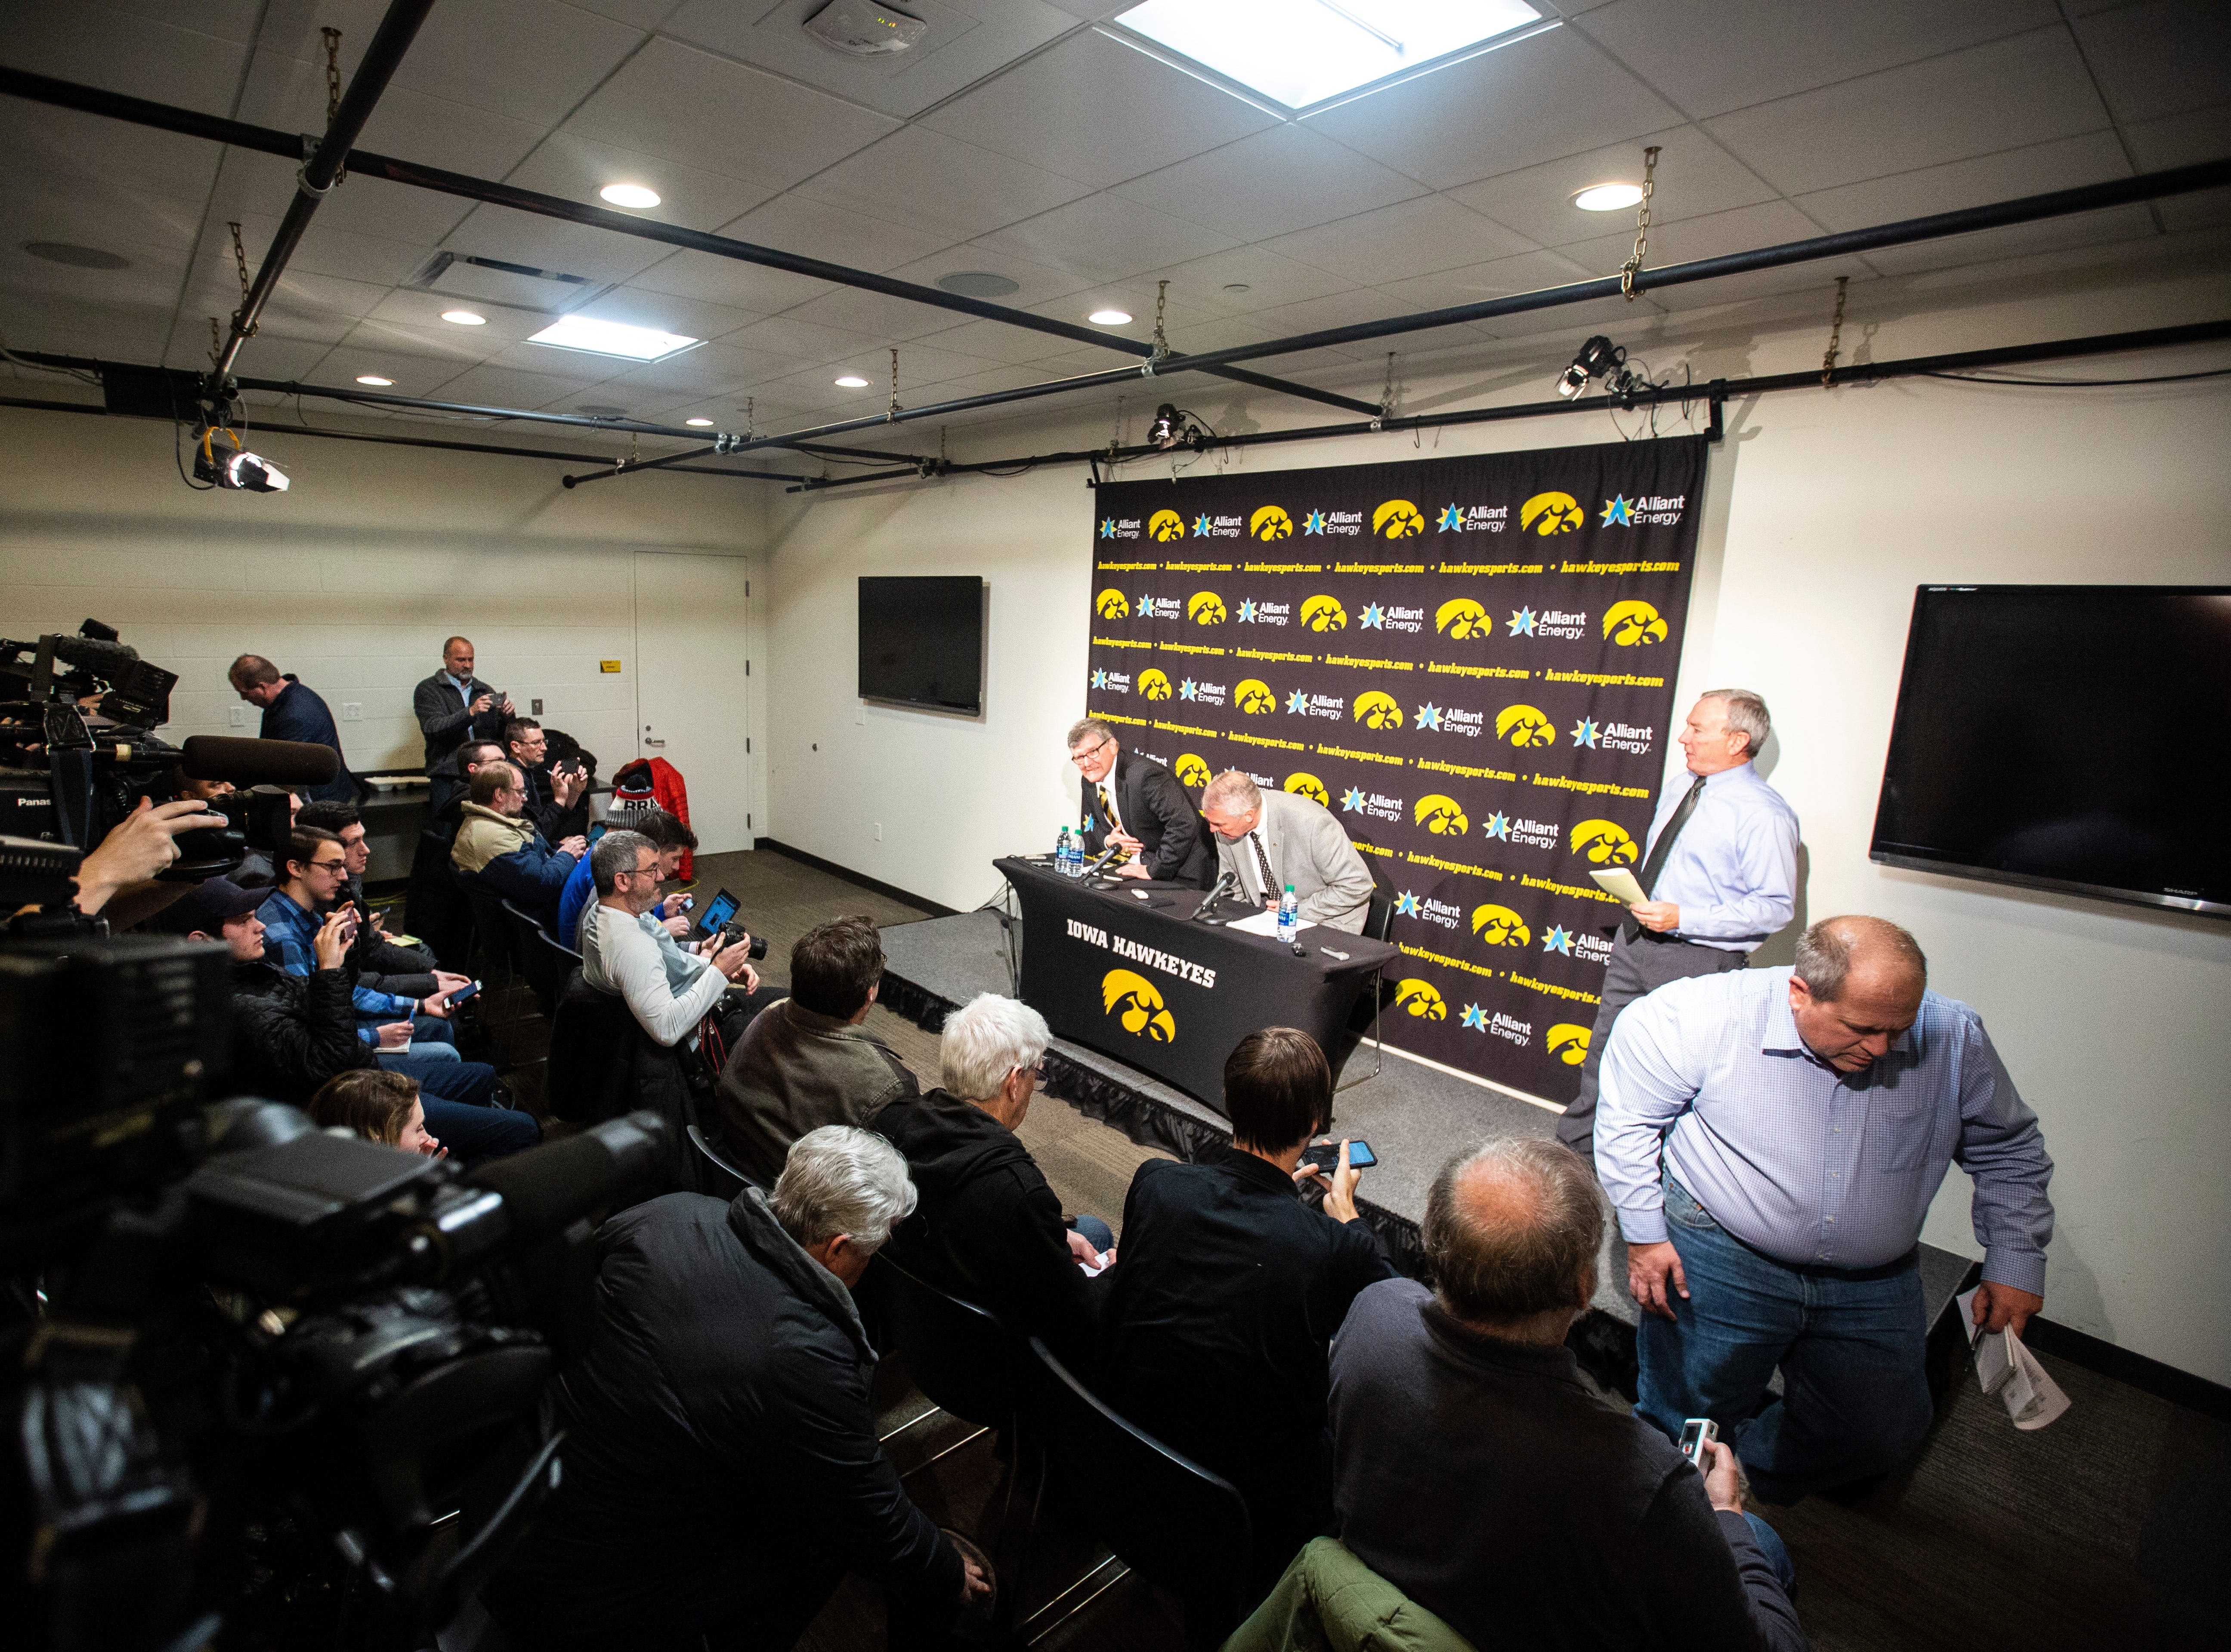 Iowa play-by-play commentator Gary Dolphin, left, and Iowa athletic director Gary Barta walk into a press conference on Wednesday, Feb. 27, 2019, at Carver-Hawkeye Arena in Iowa City, Iowa.